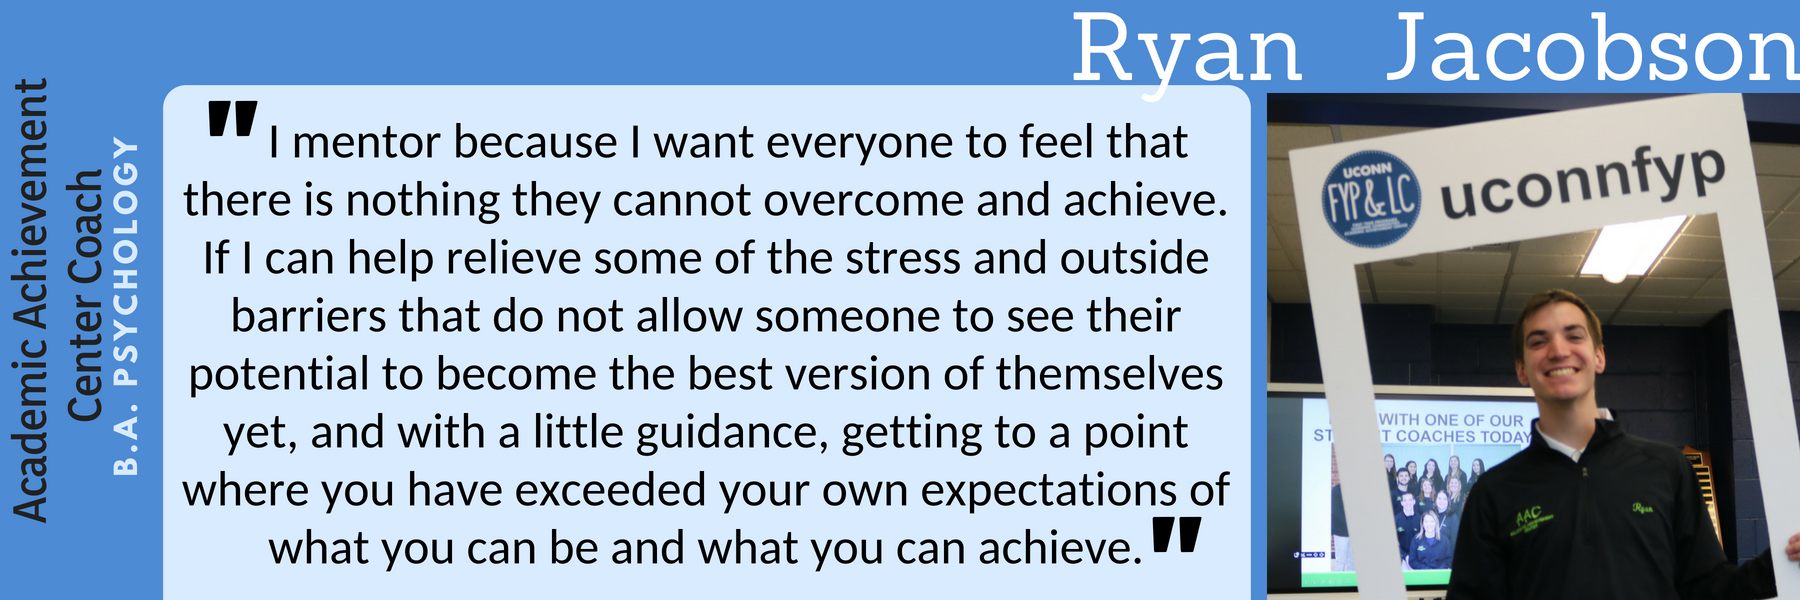 Ryan Jacobson Why I mentor